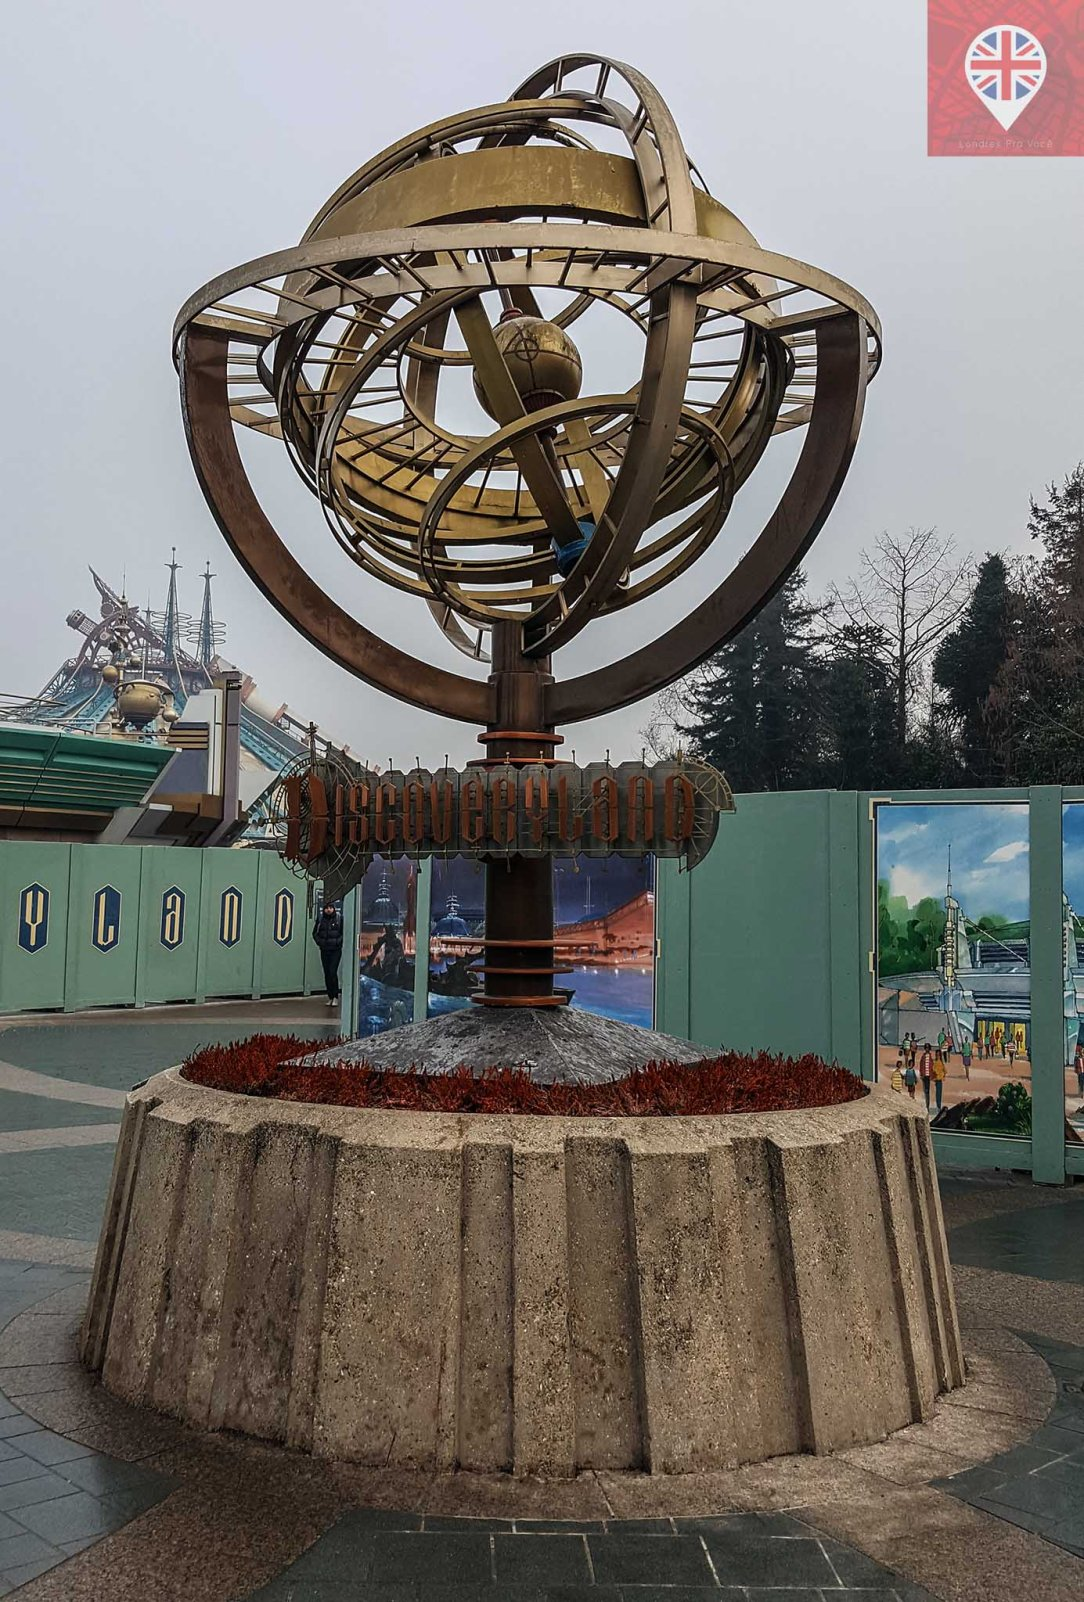 Disneyland Paris Discoveryland